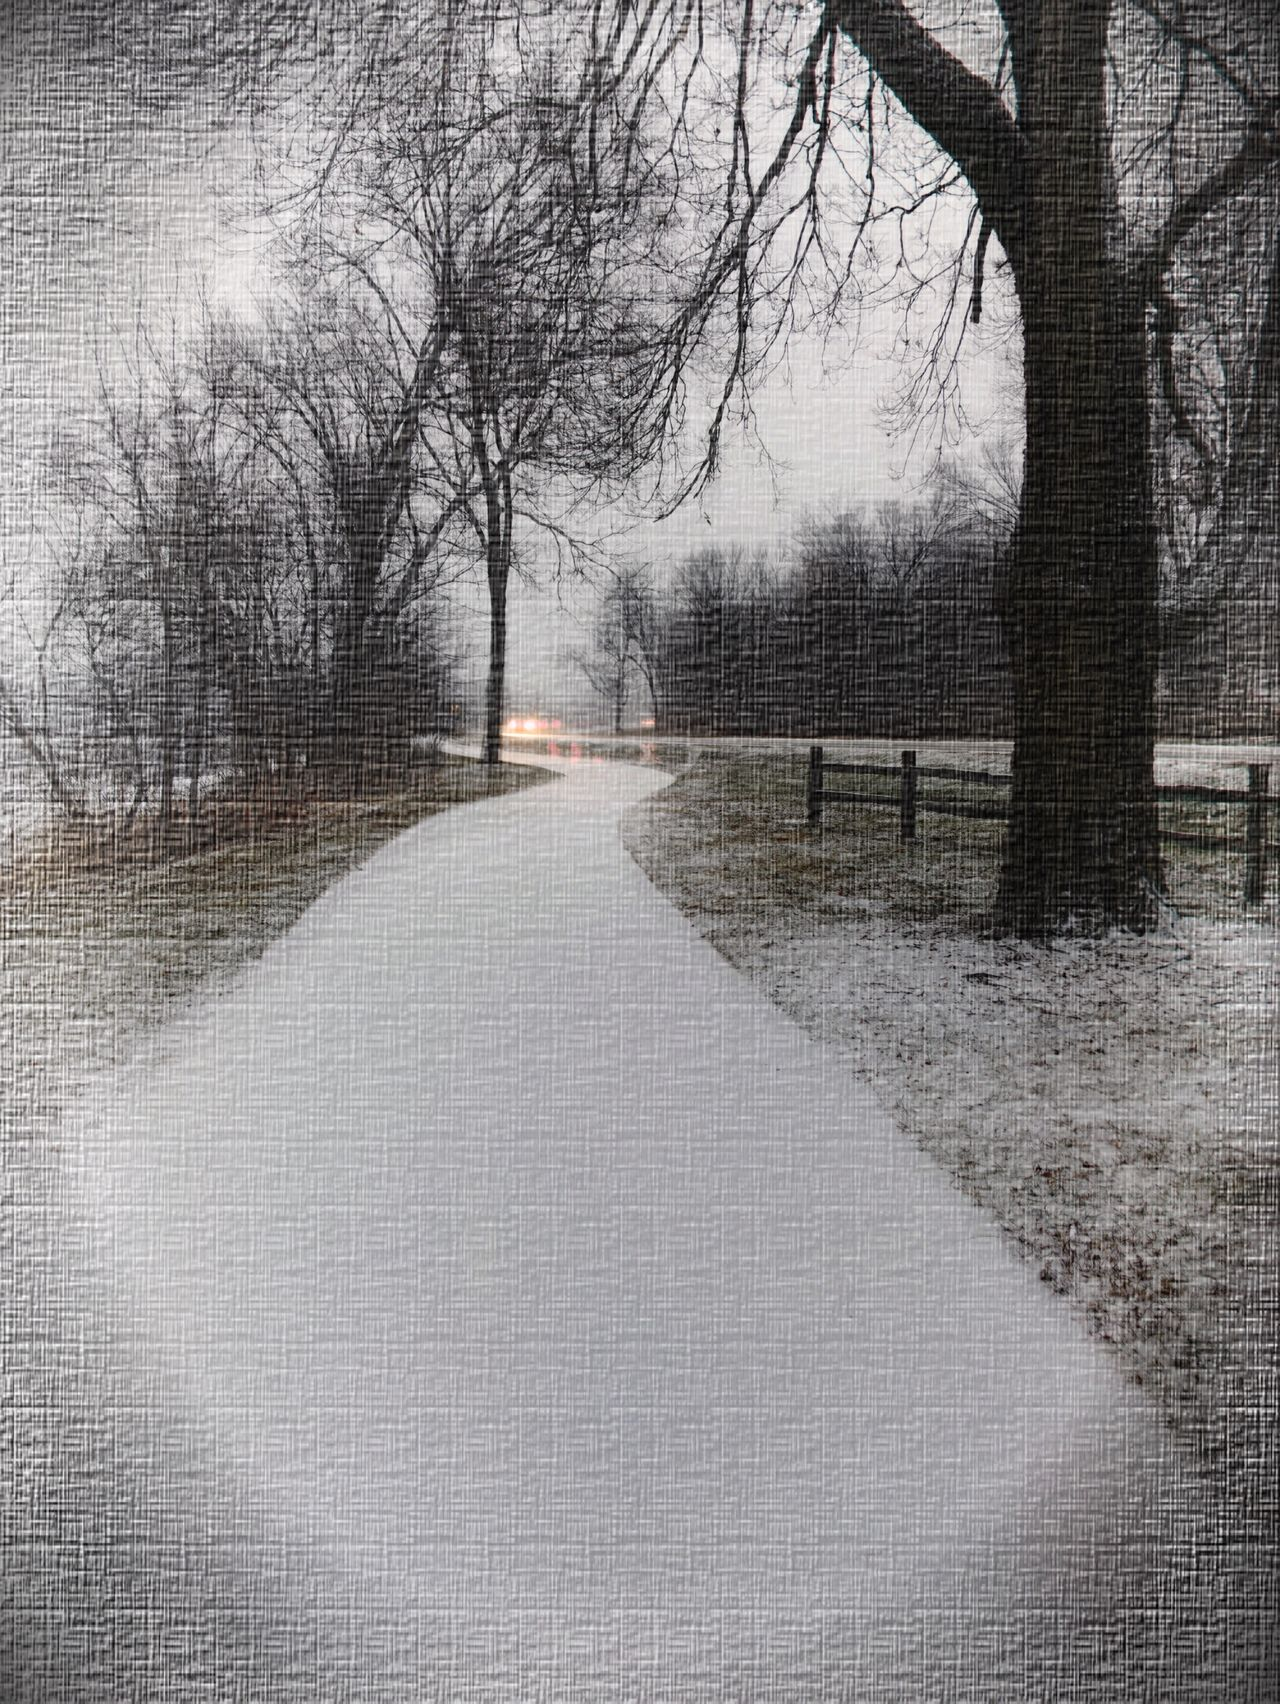 Winter Wonderland Tree Winter Snow Cold Temperature Bare Tree Weather Nature Branch No People Outdoors Day Road Snowing Beauty In Nature Tranquility Fox River The Fox River At Montgomery, Illinois My Own Style Of Beauty The Week On EyeEm